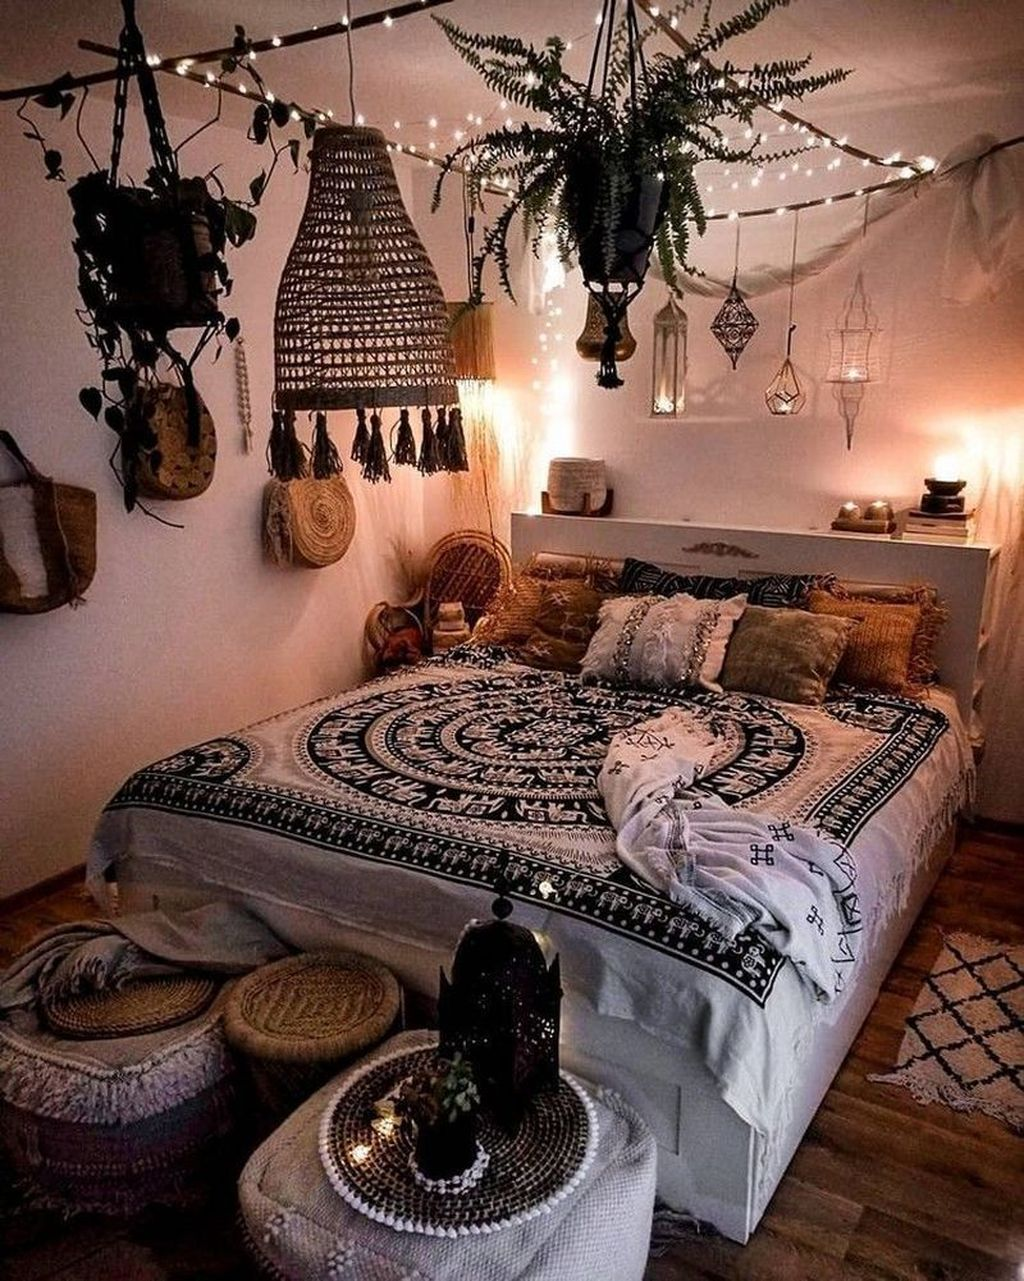 The Best DIY Bedroom Decor Ideas You Have To Try 06